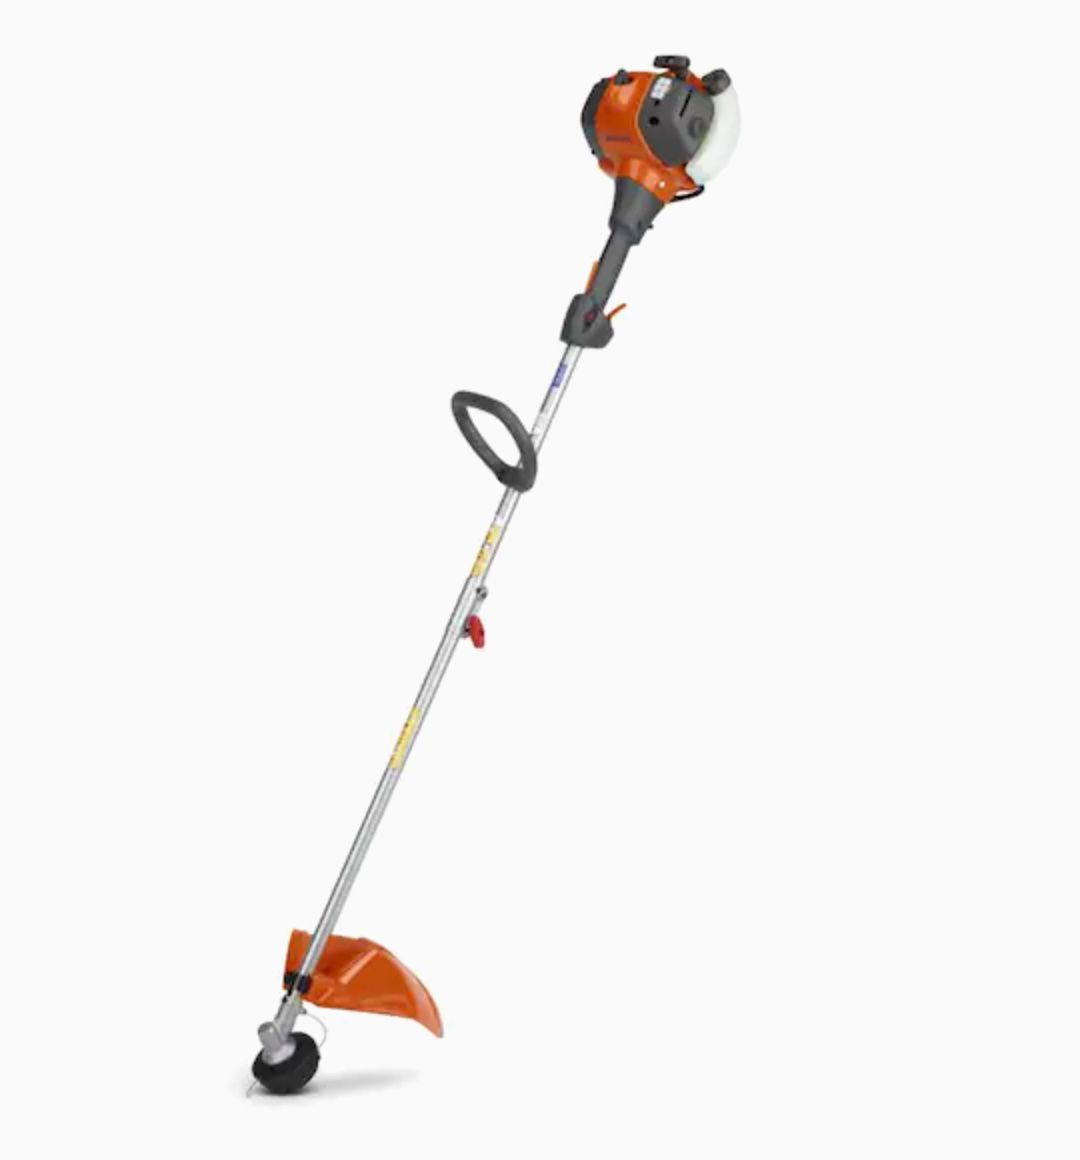 Husqvarna 128LD 28-cc 2-Cycle 17-in Straight Shaft Gas String Trimmer with Attachment Capable